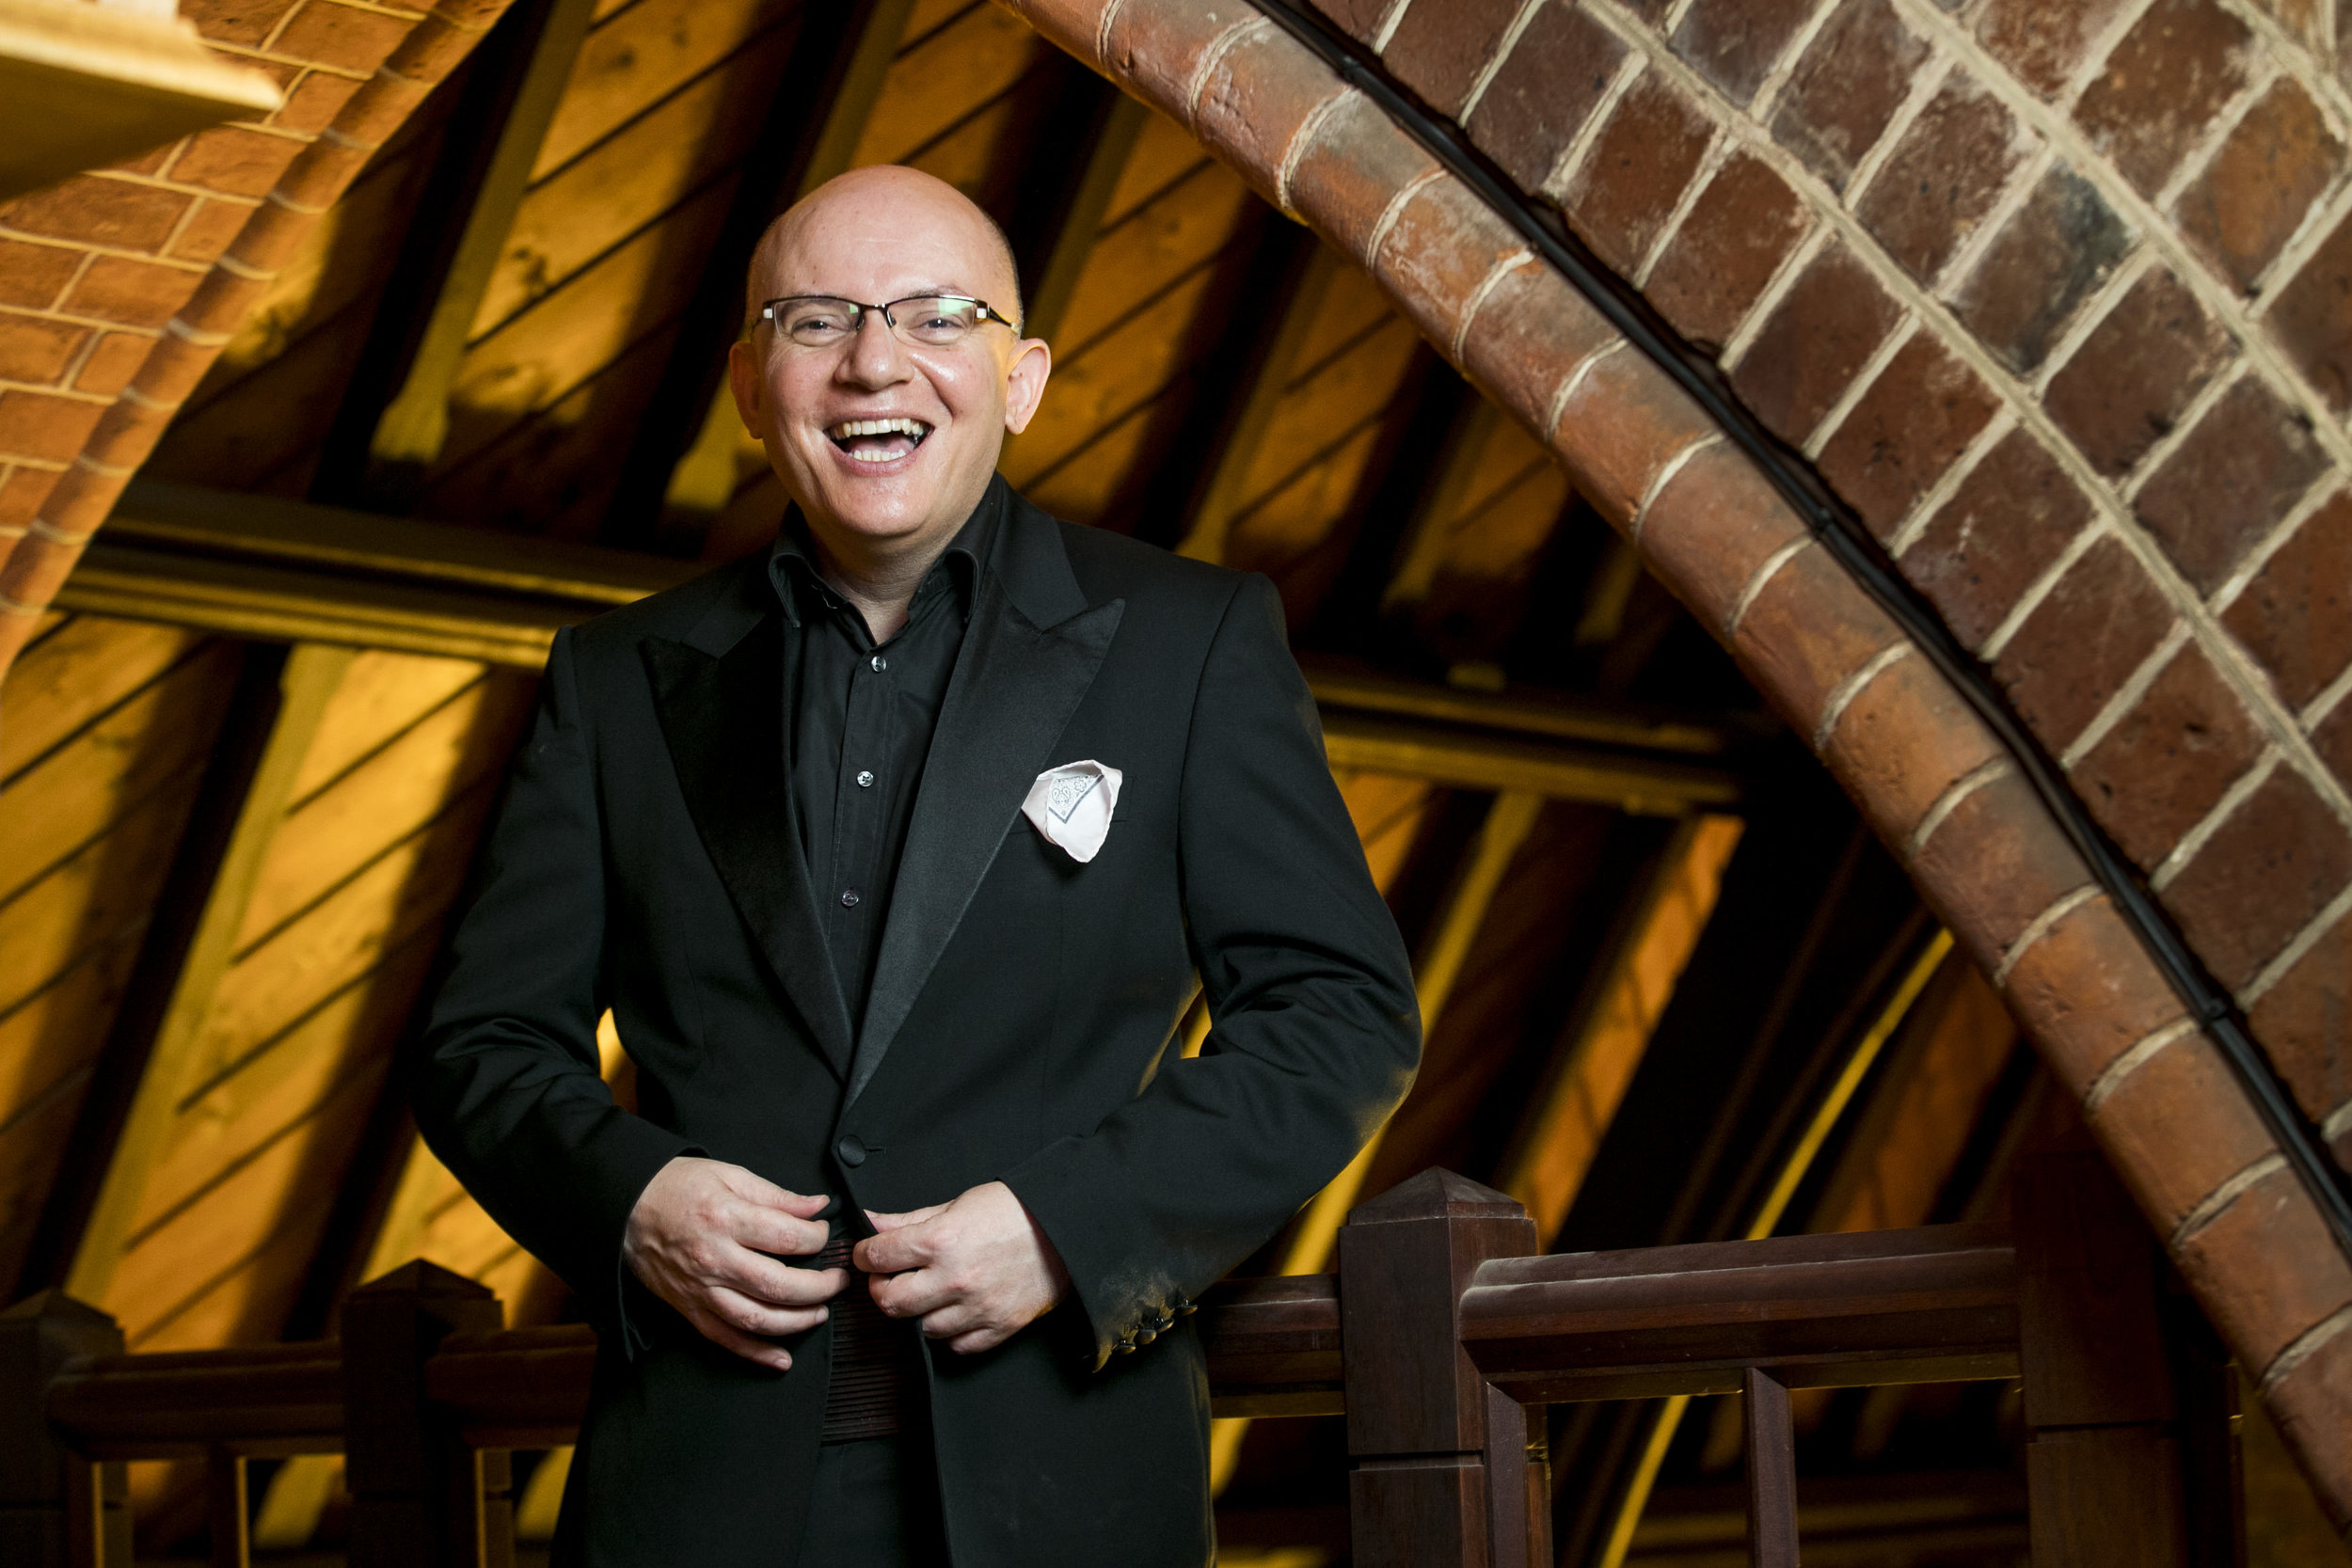 Reviews & Media - Read reviews of Joseph's recordings and concerts, and other media appearances.